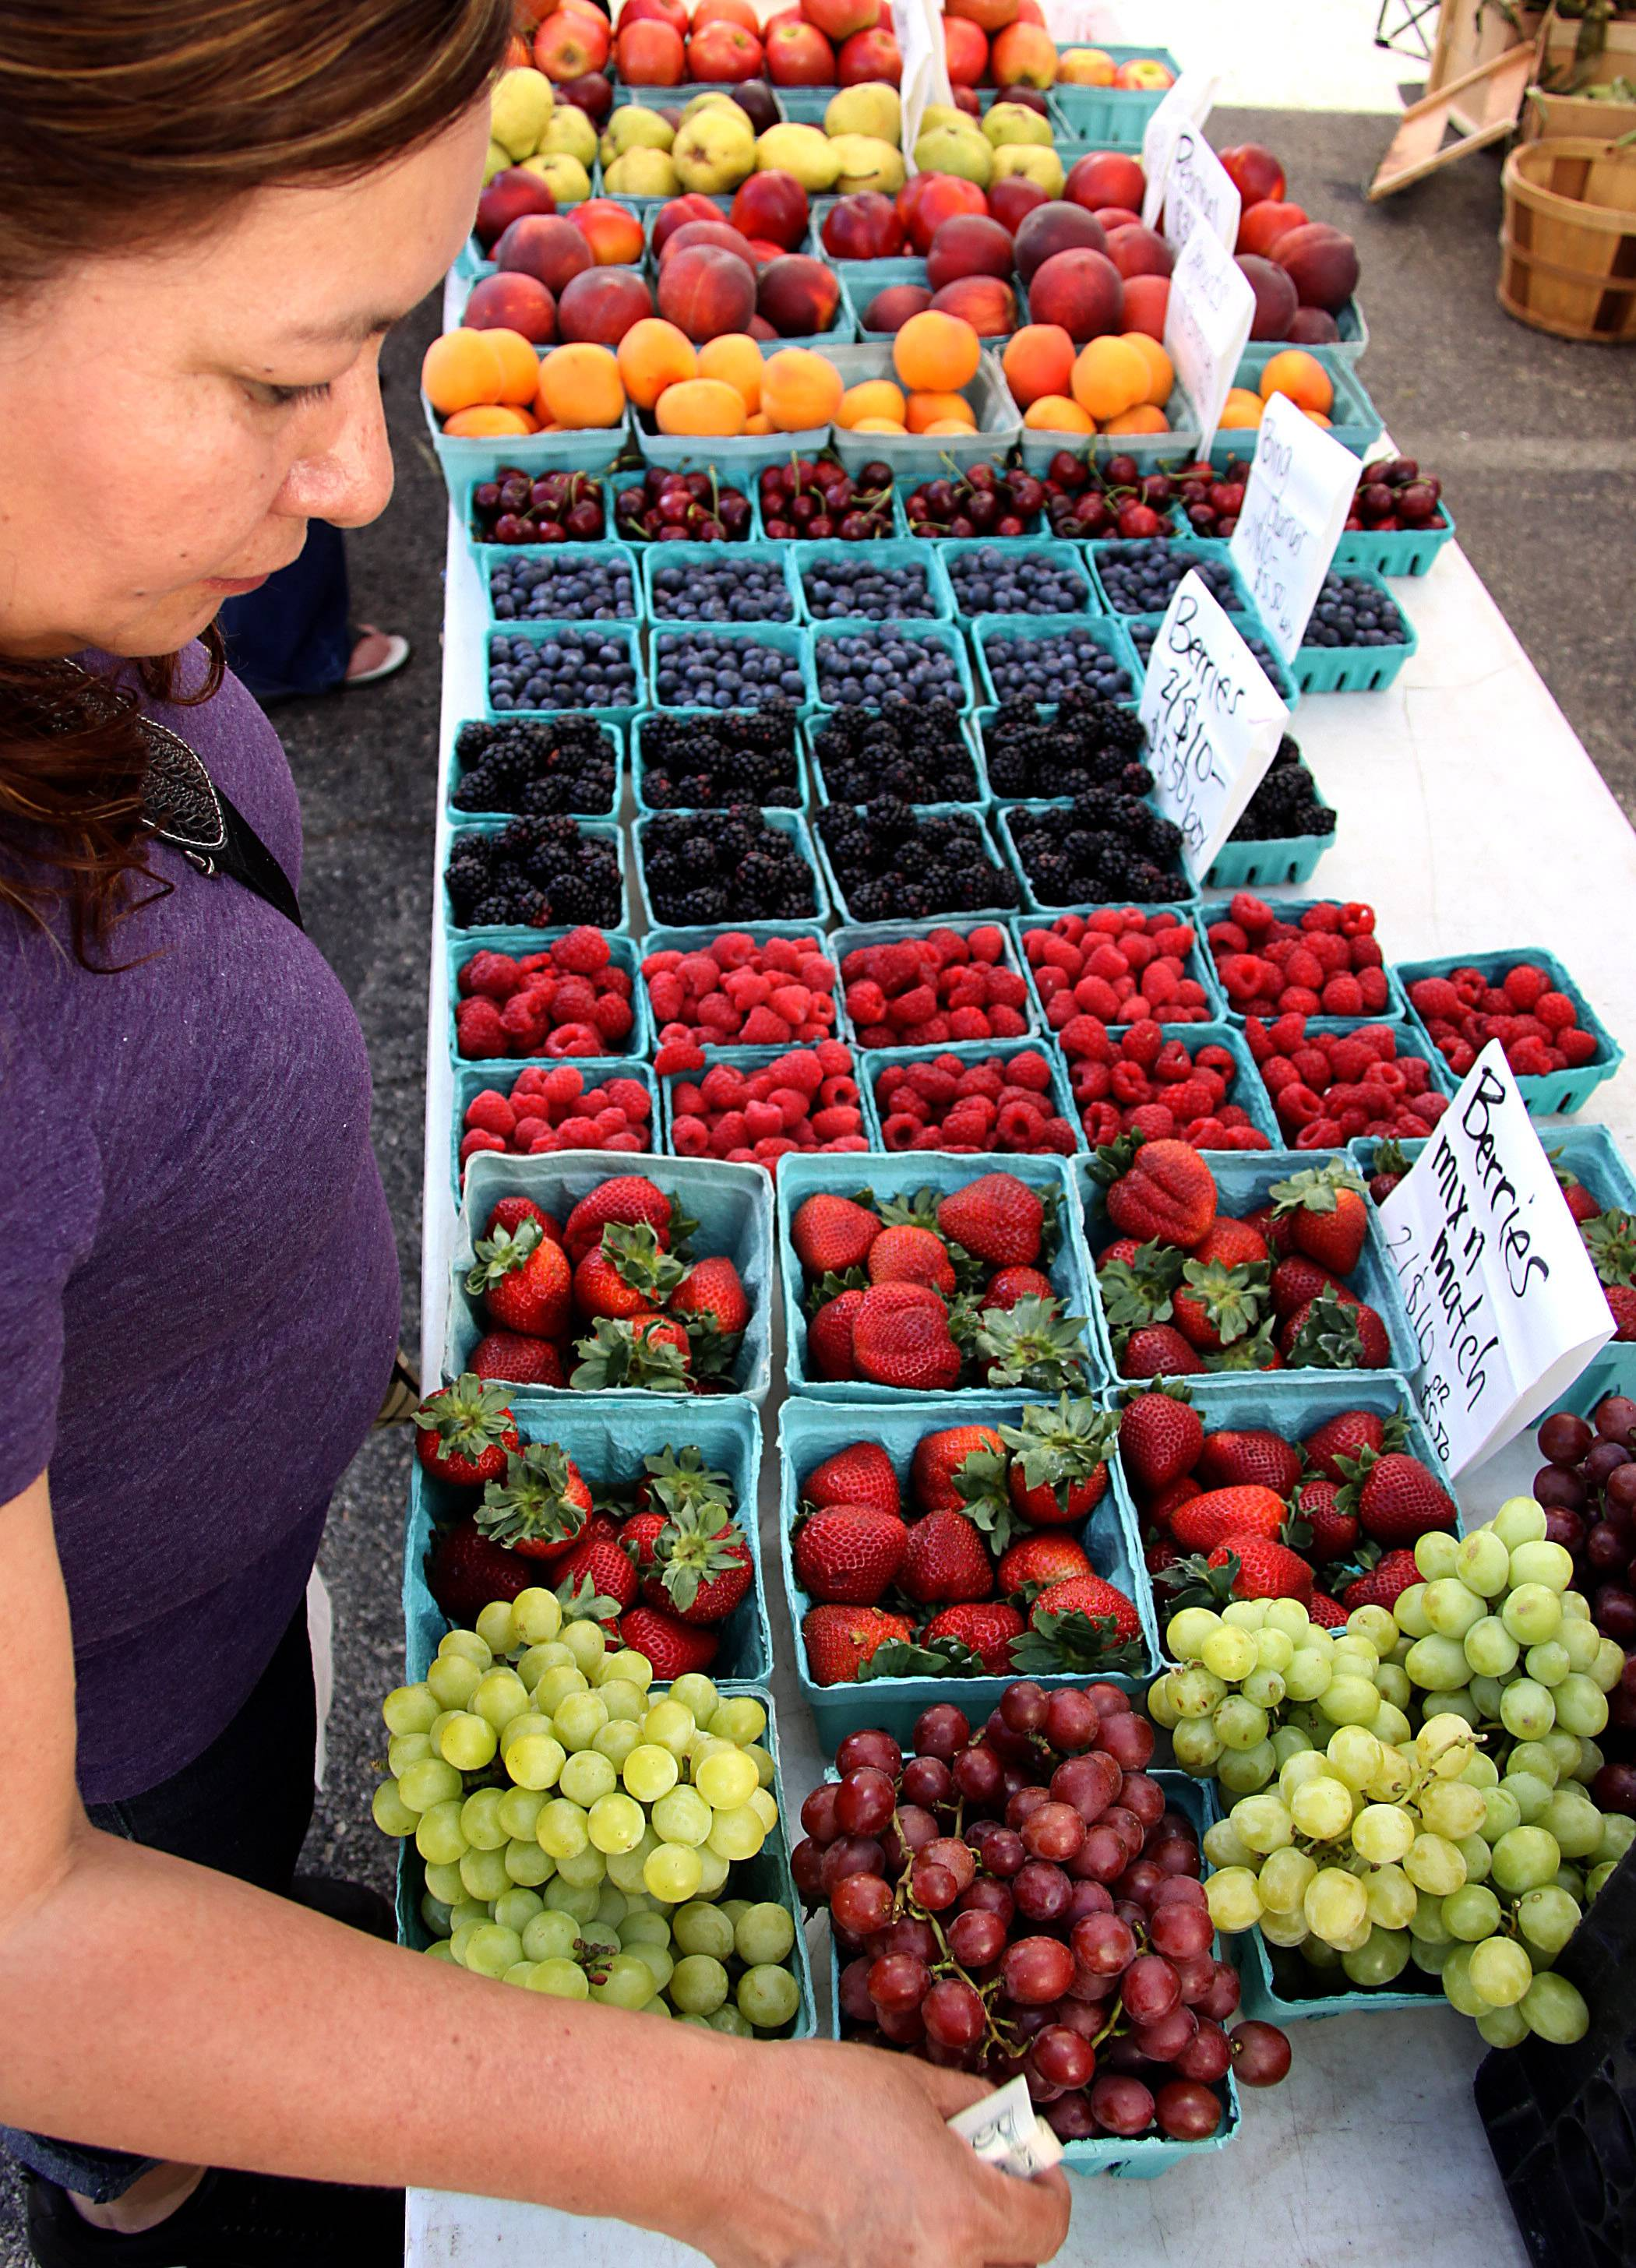 Leticia Ramirez of Elgin shops for fresh berries at the Windy Acres Farm Stand booth during the Harvest Market in downtown Elgin. The market opens for the season on Thursday, June 1.